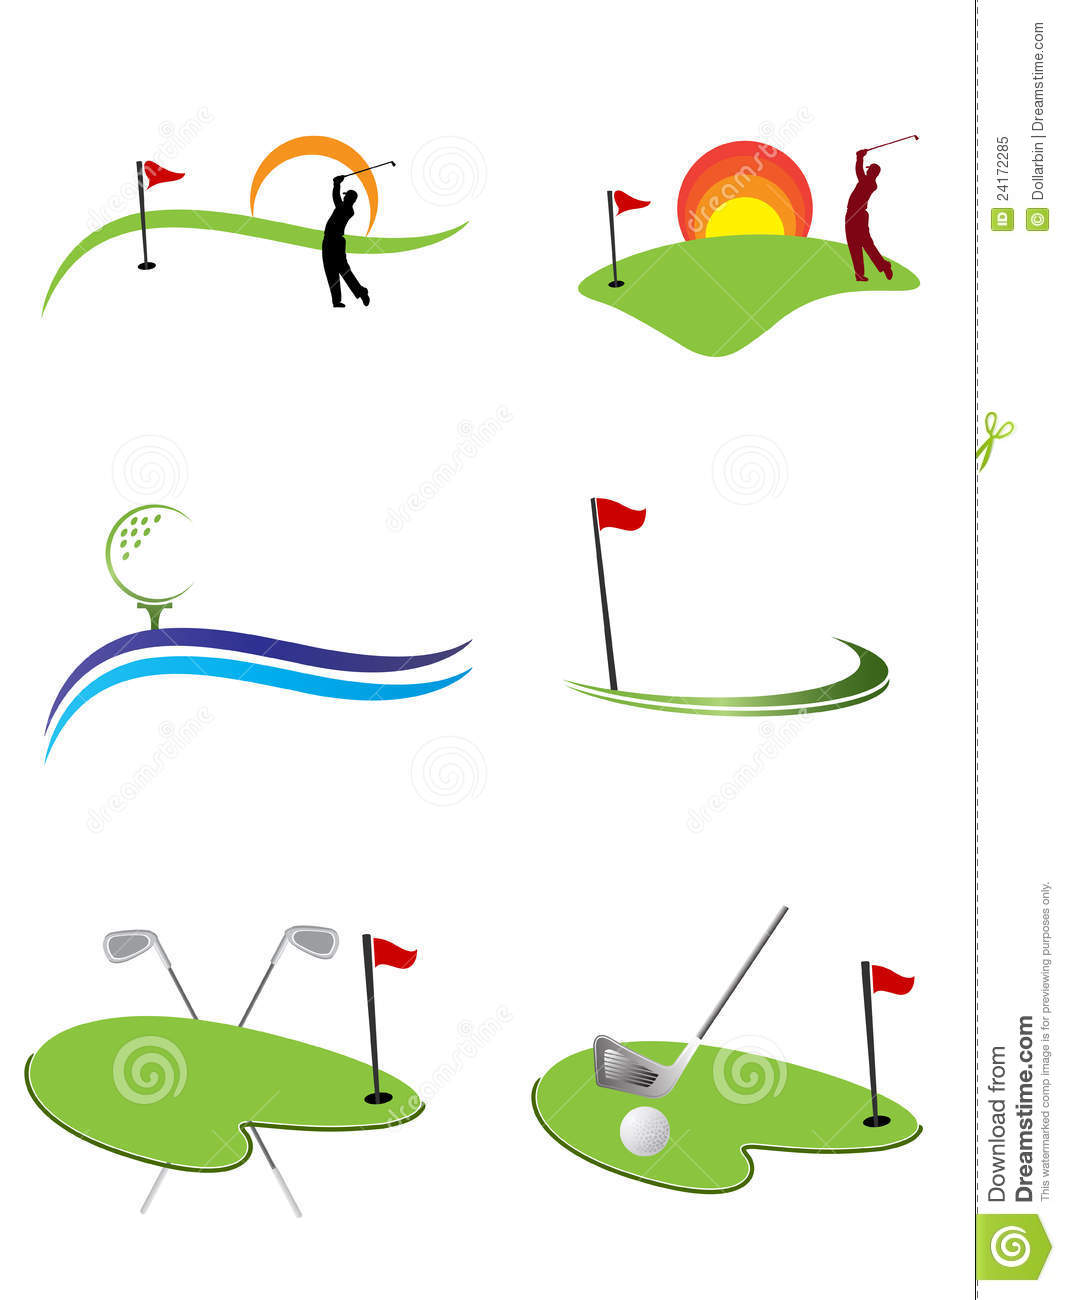 Golf Logos Royalty Free Stock Photo - Image: 24172285